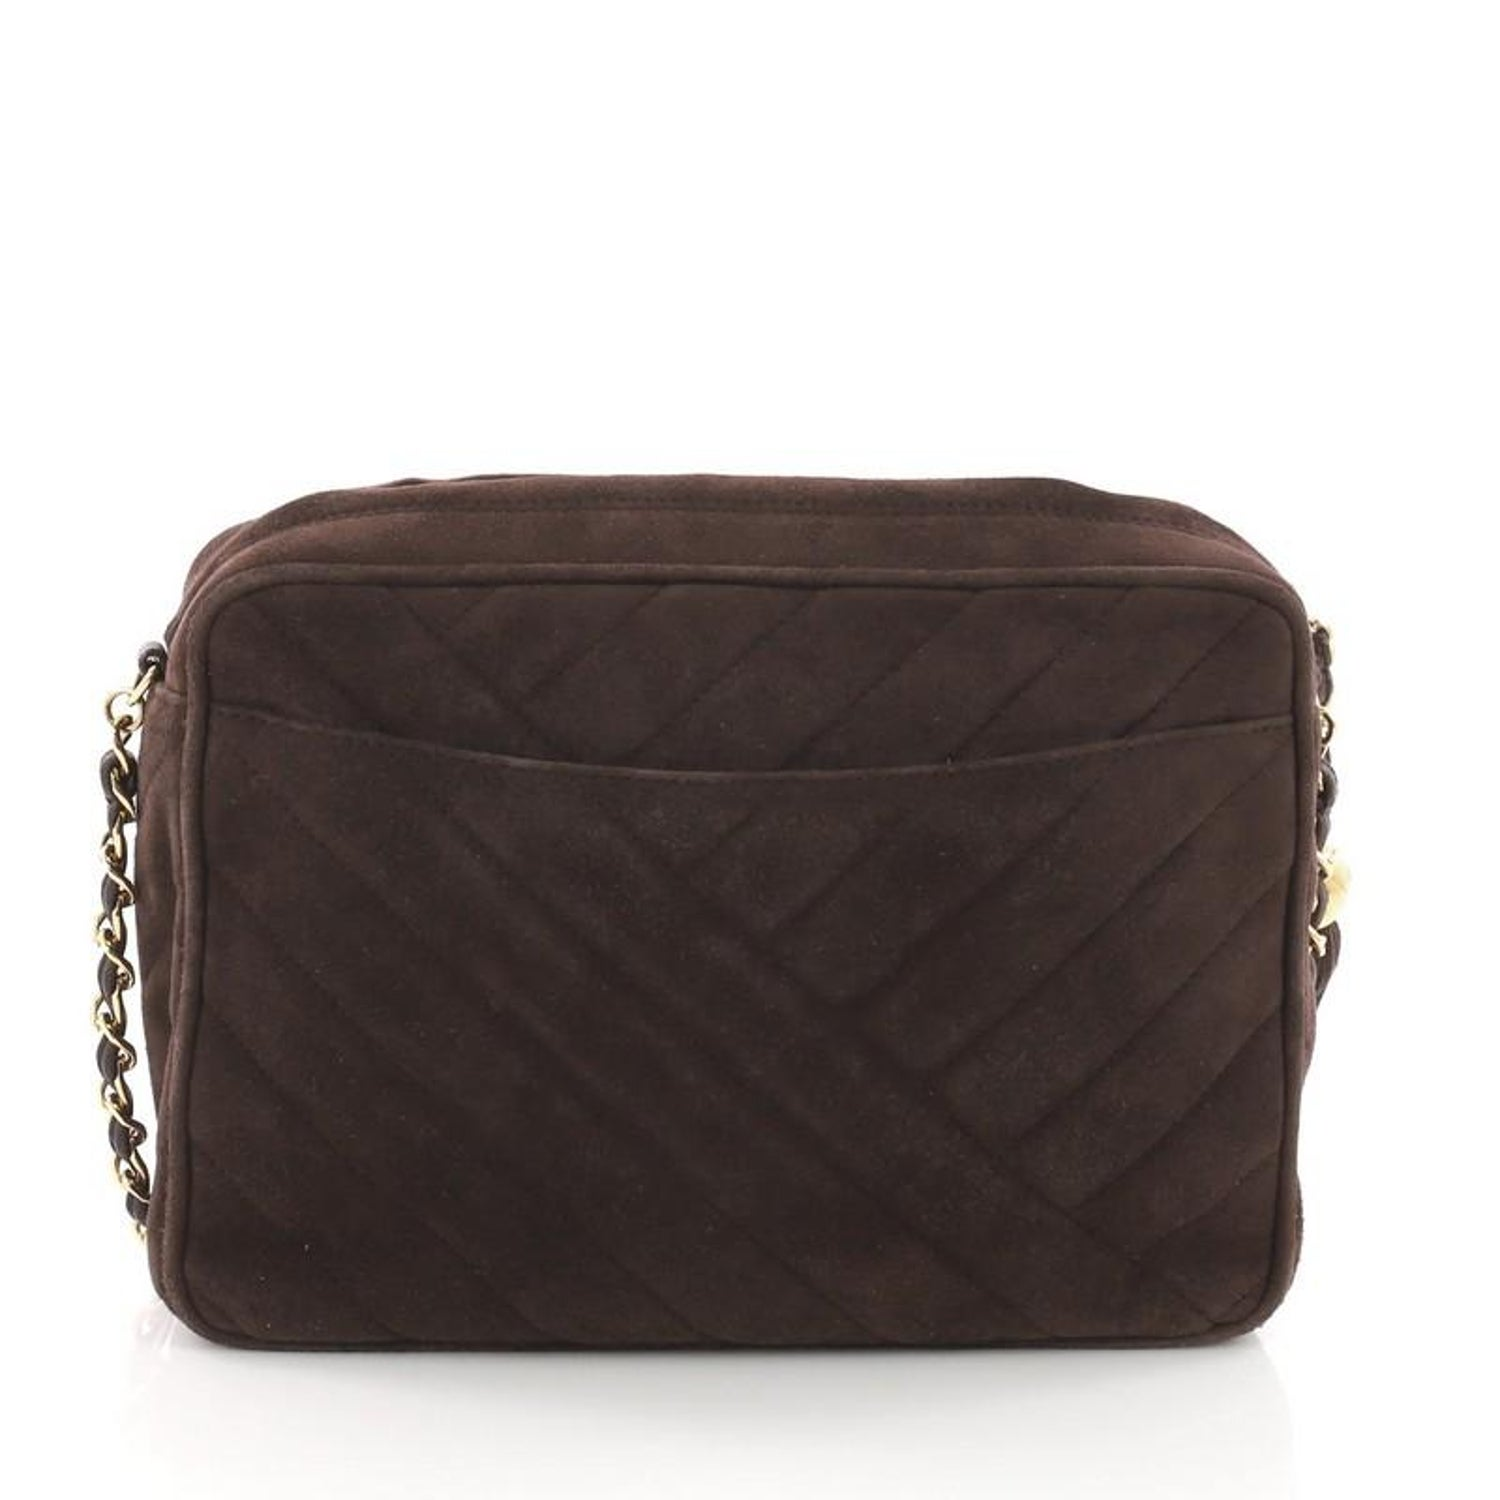 4b9605b05159 Chanel Vintage Camera Bag Chevron Suede Small For Sale at 1stdibs